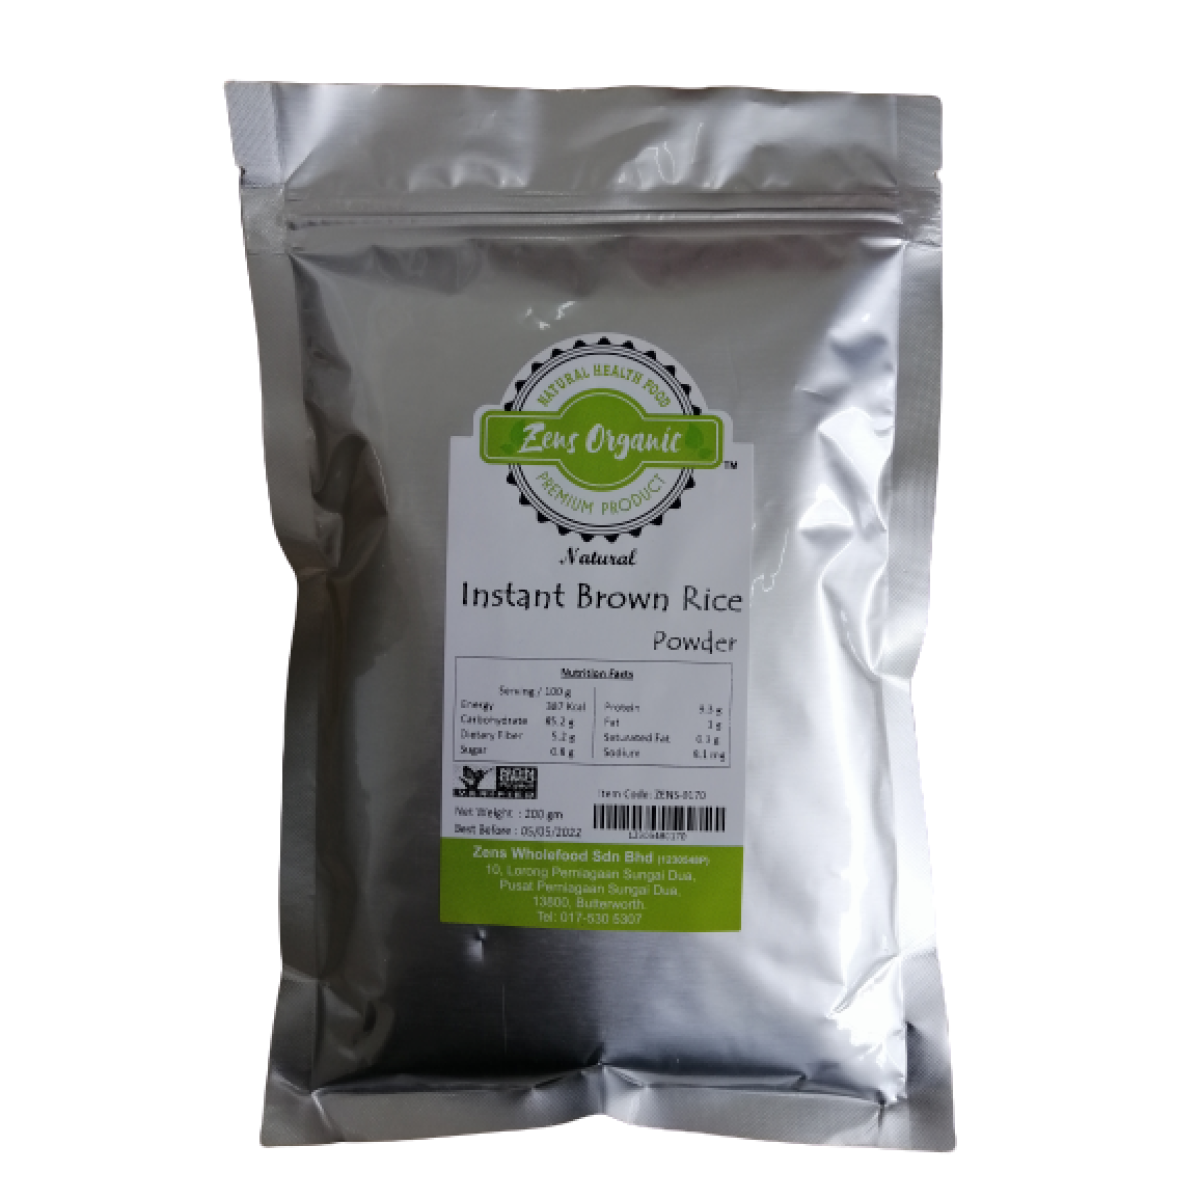 Zens Organic Natural Instant Brown Rice Powder 200g